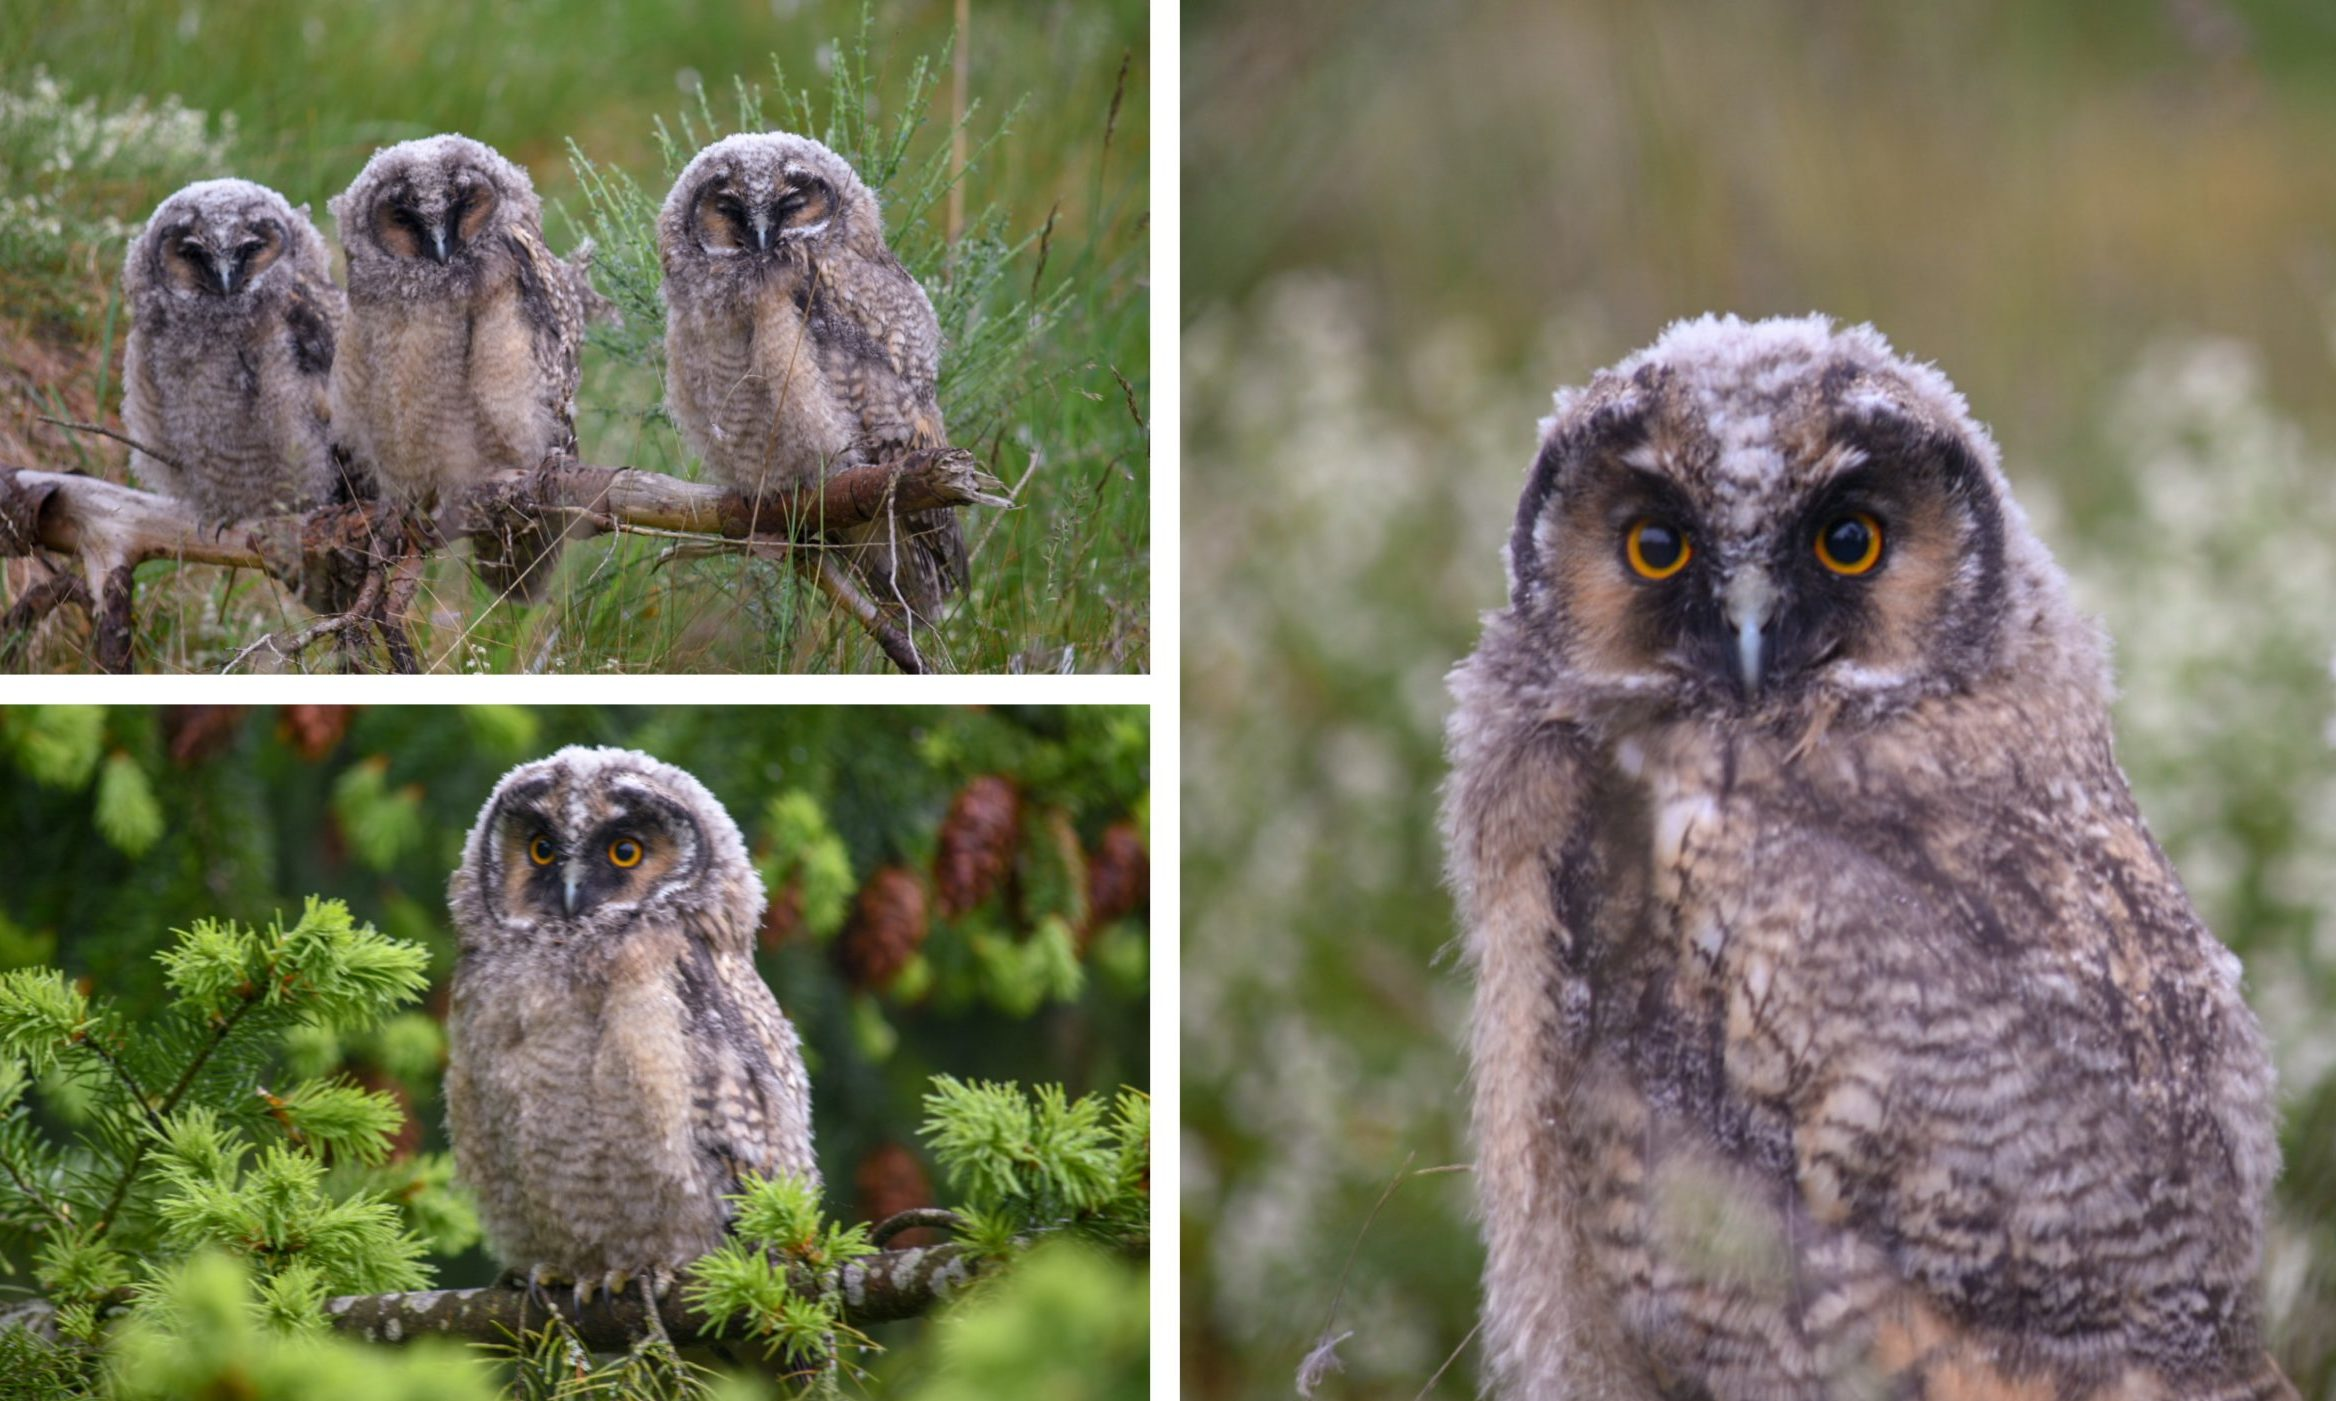 The Angus owlets.